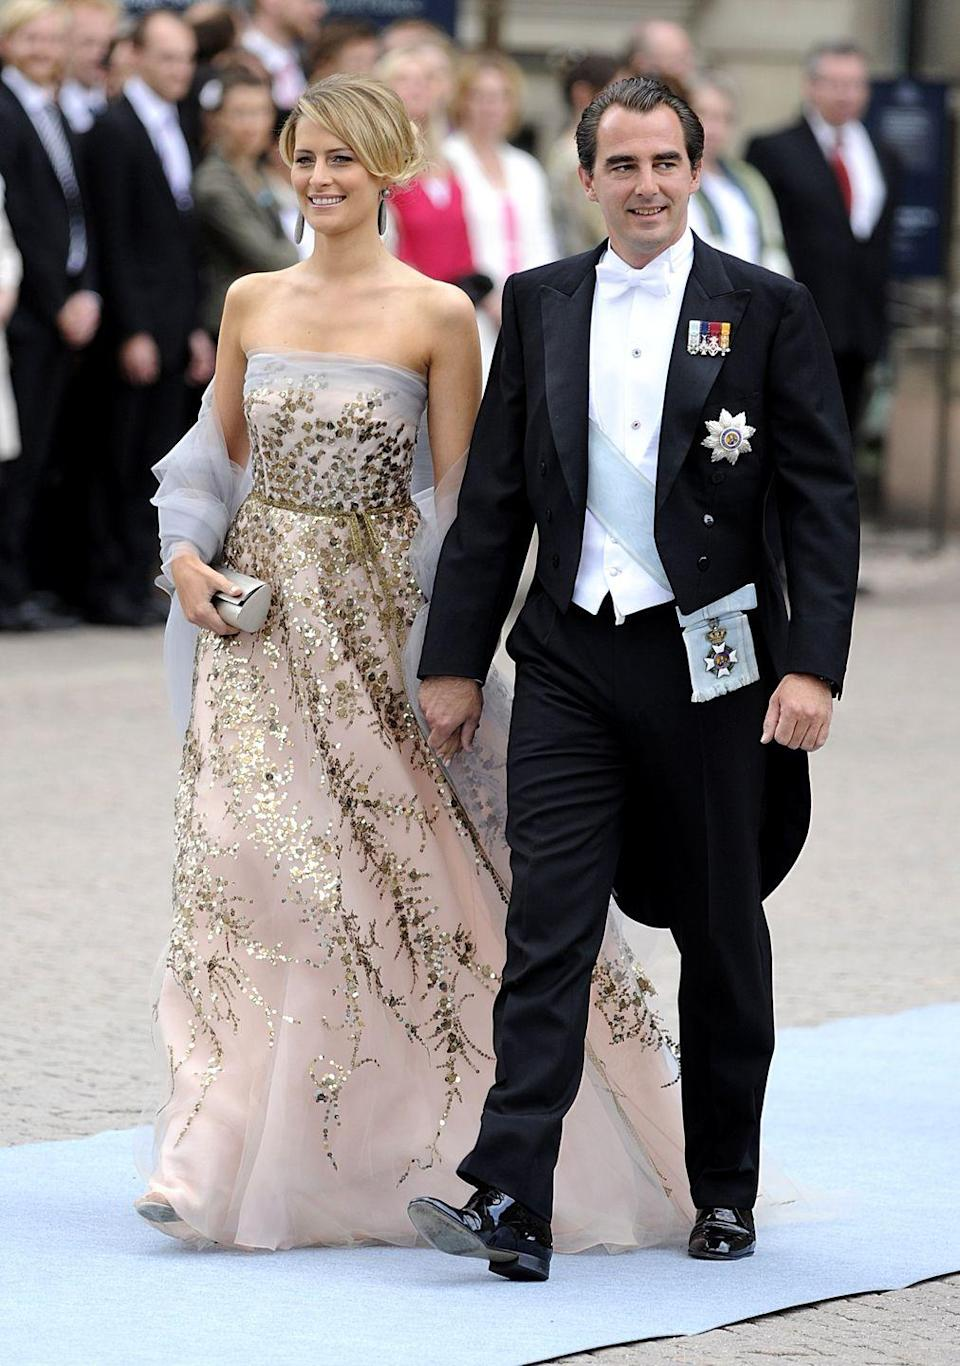 <p>A former event planner and consultant for Diane von Furstenberg, she became known as Princess Tatiana of Greece and Denmark when she wed Prince Nikolaos in 2010. Born in Venezuela and raised in Switzerland, she graduated Georgetown University in Washington, D.C. </p>